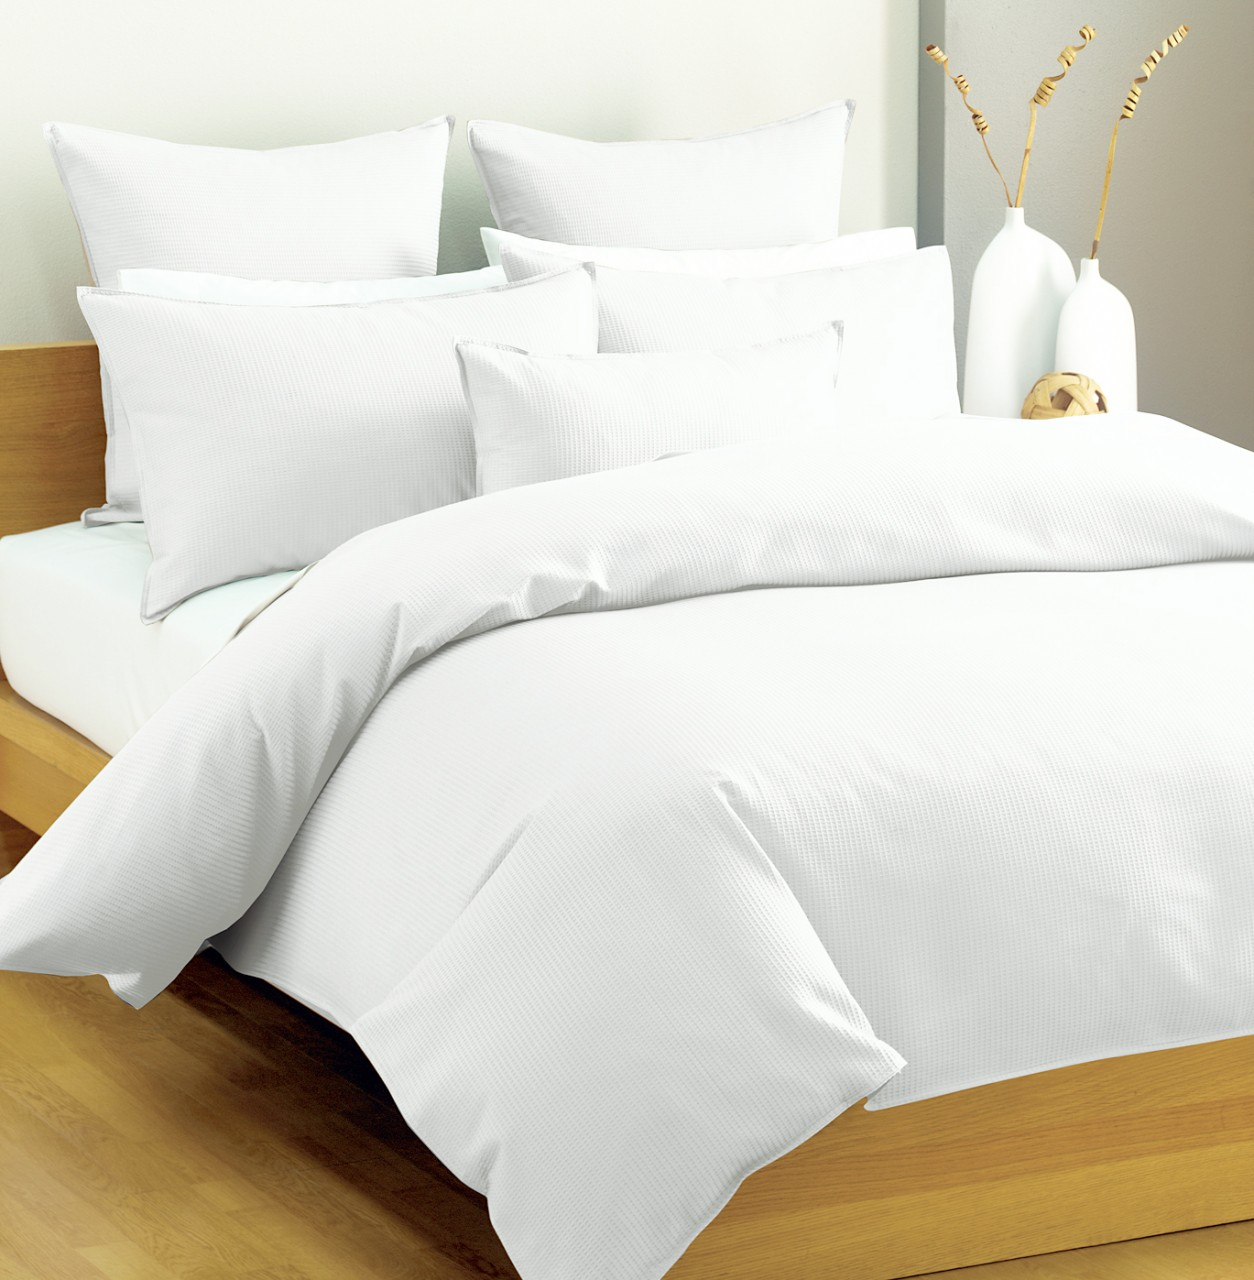 Protector Mattress Protectors And Toppers Bedding Chic At